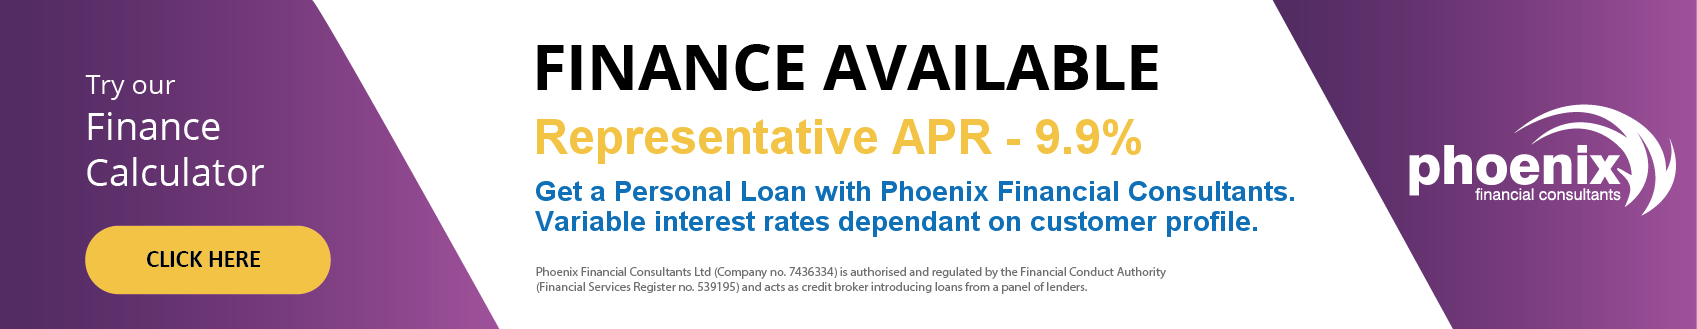 Finance available through Phoenix.